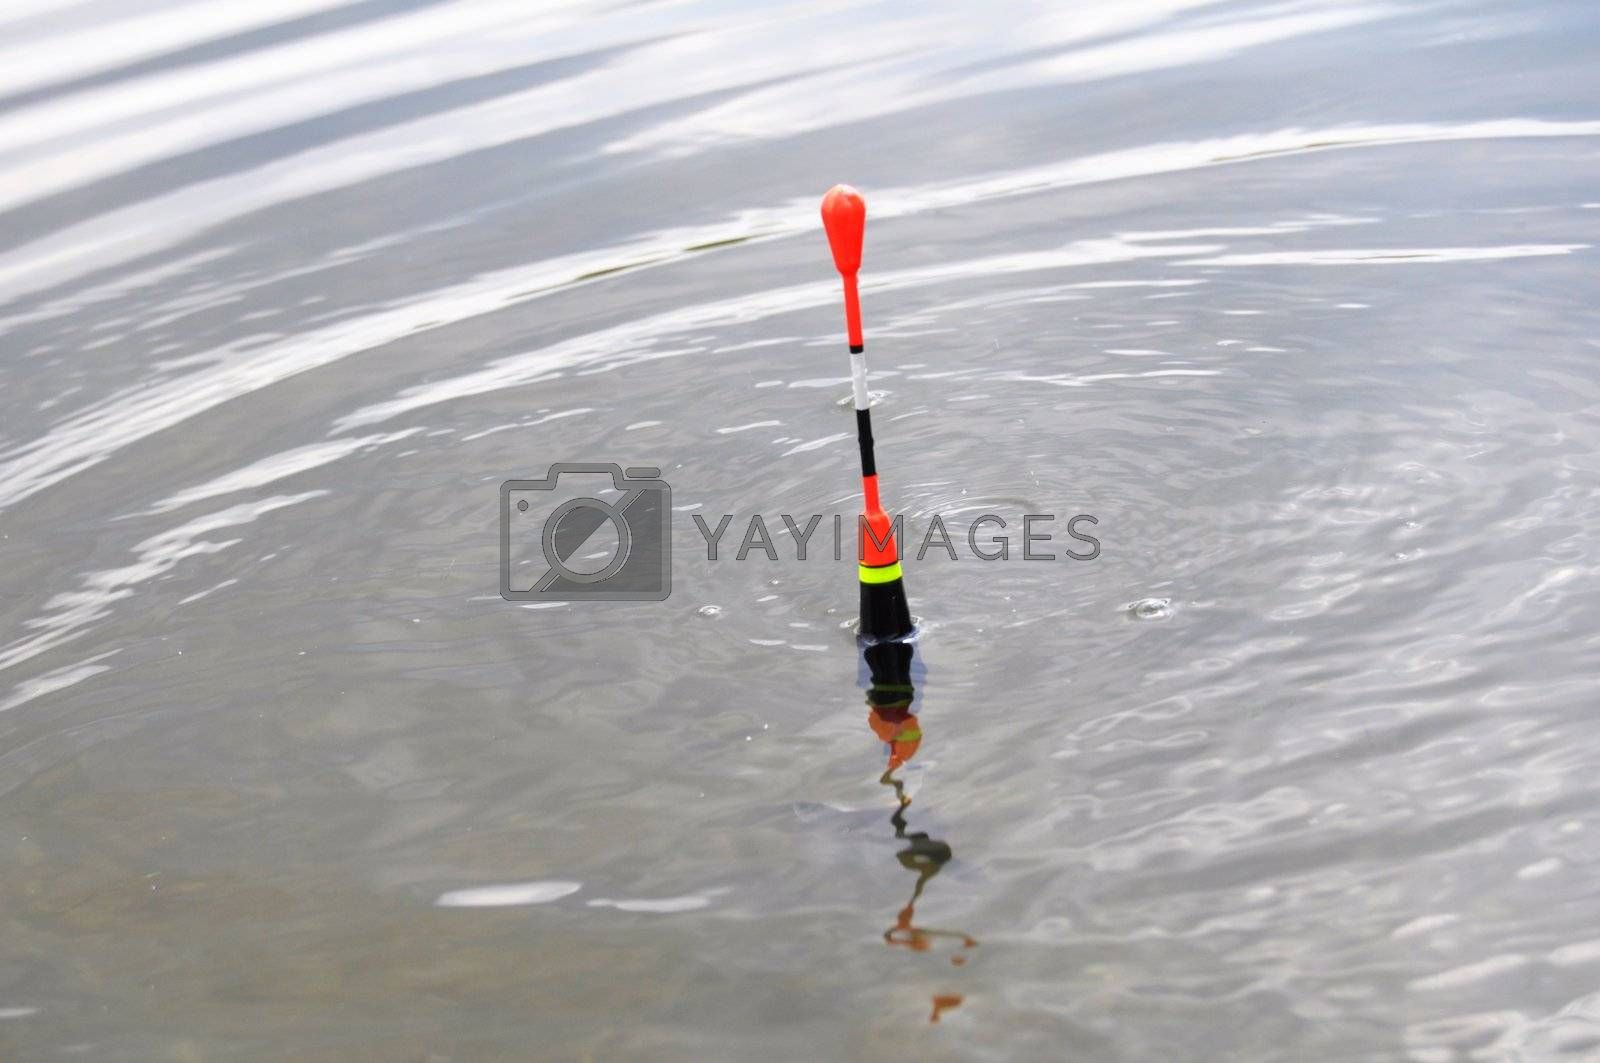 bobber or fishing float in water showing success concept